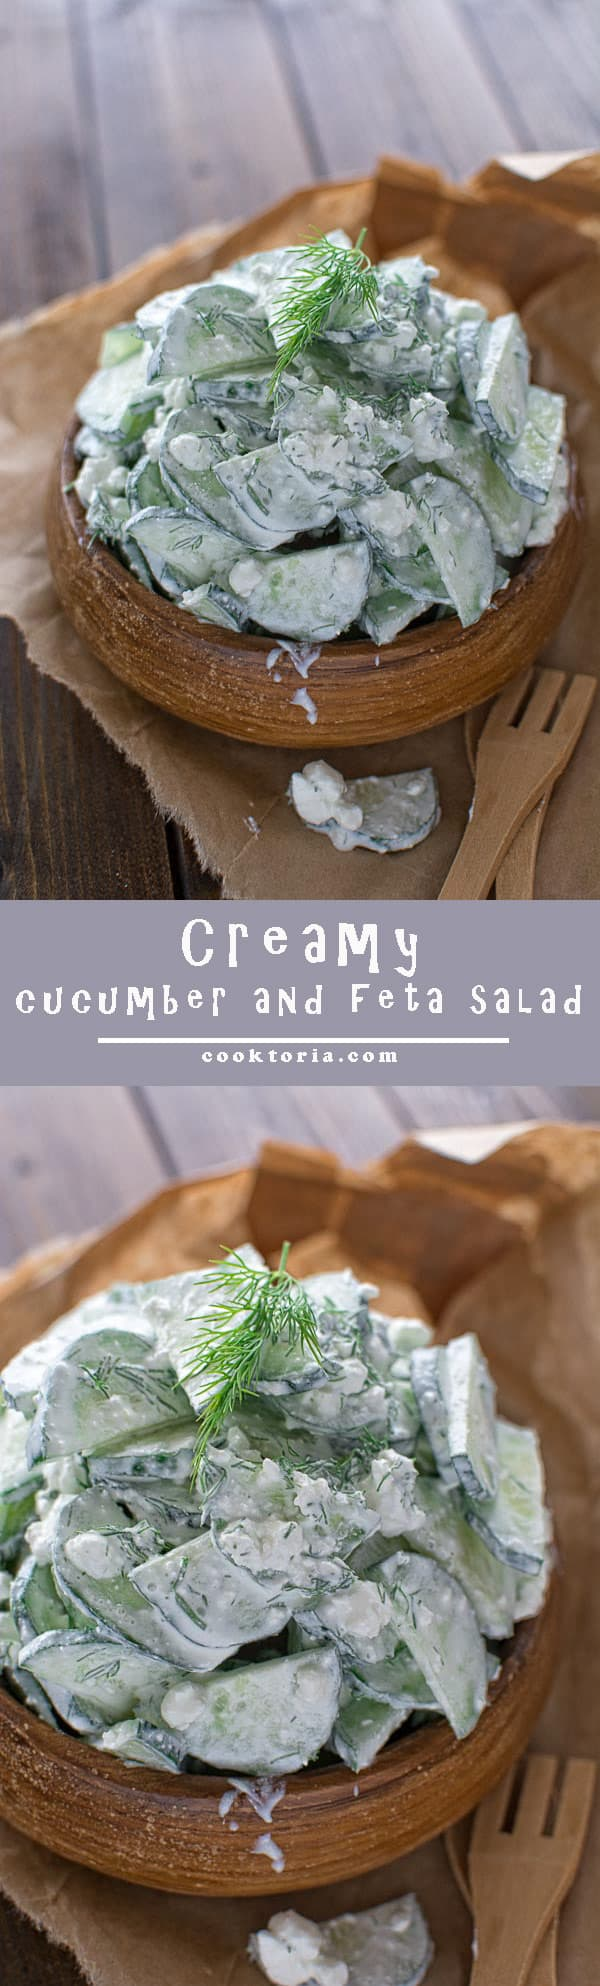 Delicious and creamy cucumber and feta salad that your whole family will love. ?tgncooking.com